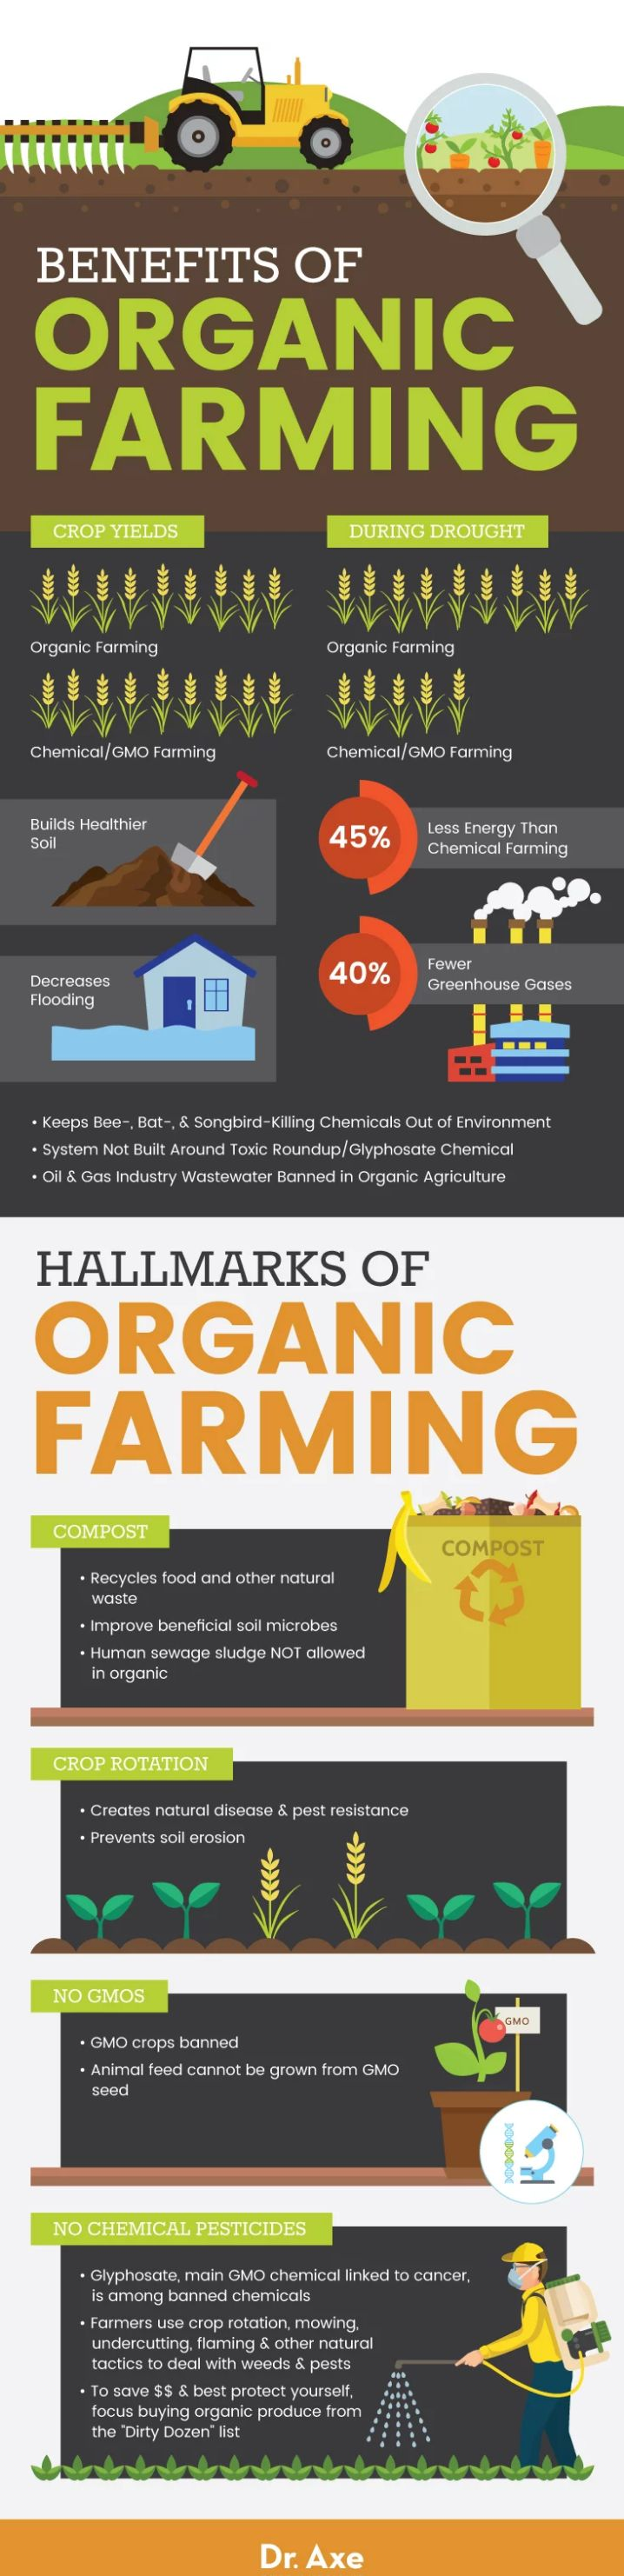 LittleKnown Organic Perks Use of Oil & Gas Wastewater